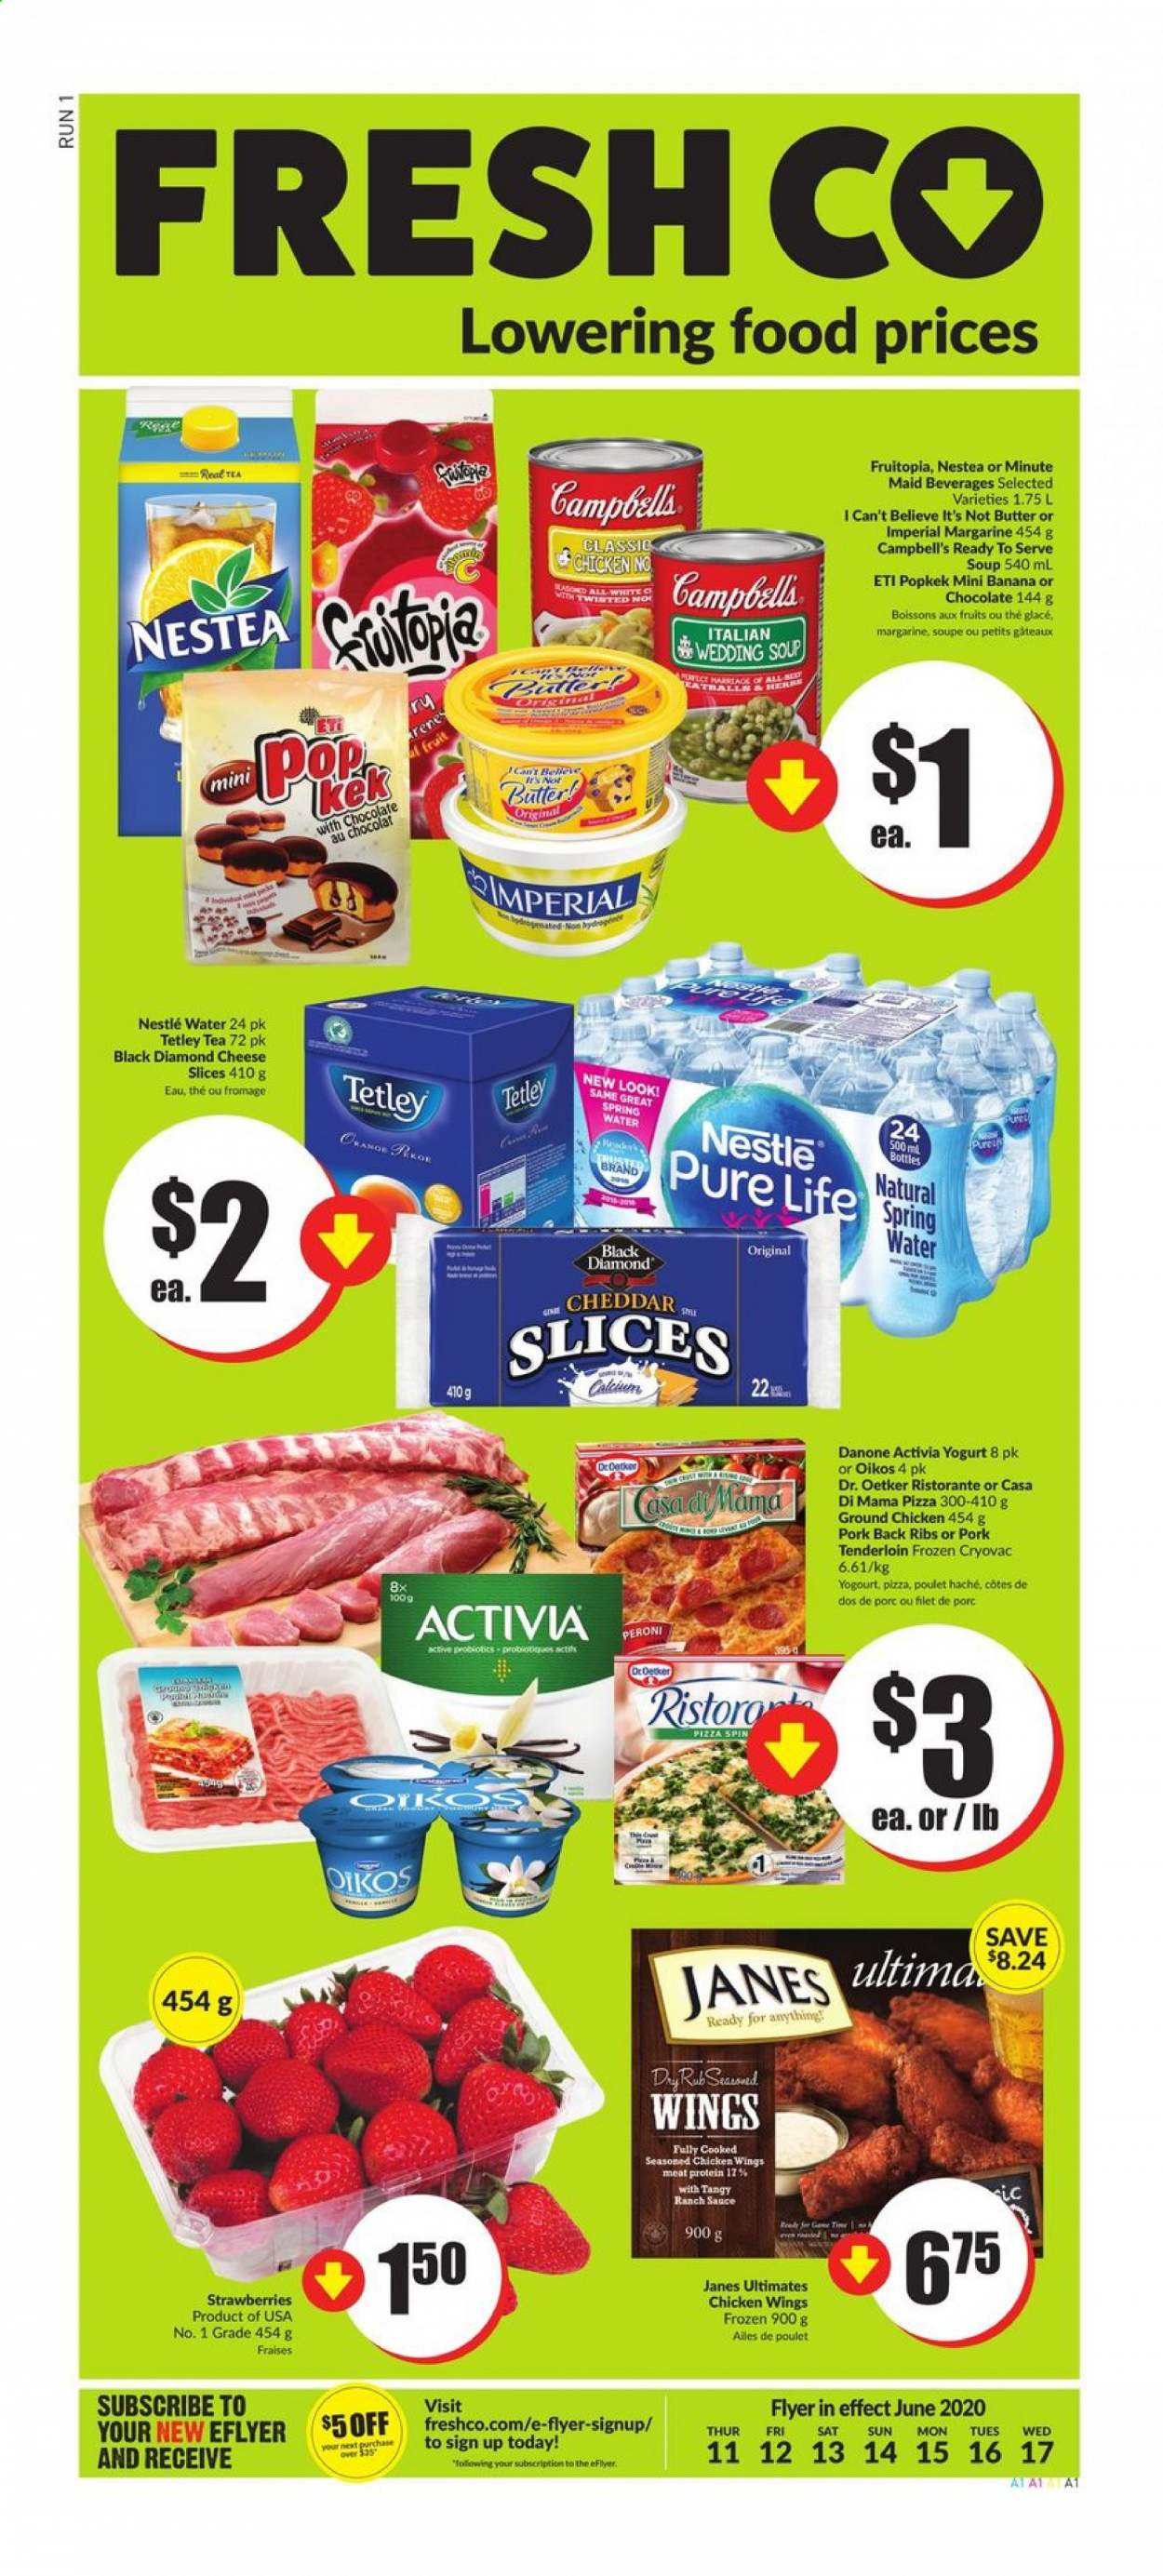 FreshCo. Flyer  - June 11, 2020 - June 17, 2020. Page 1.